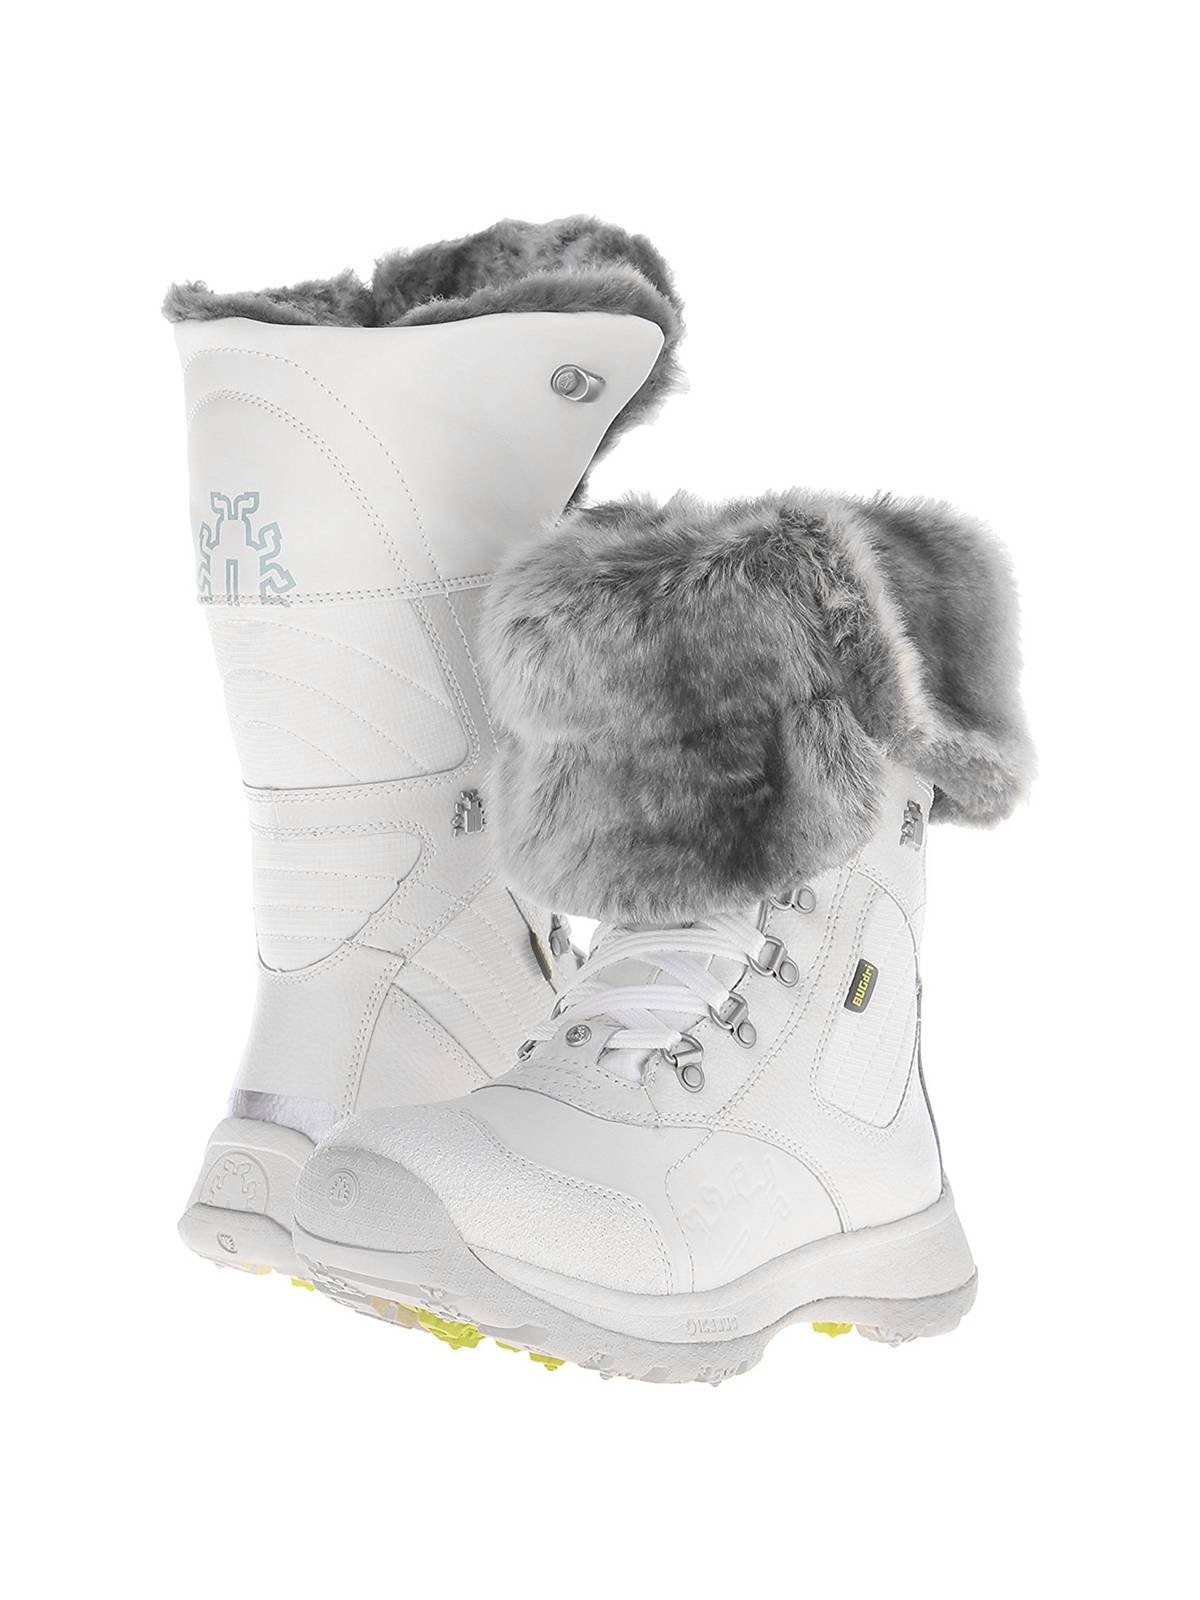 Icebug Meribel-L Womens Winter Snow Boots, Ladies Waterproof Lightweight Insulated Hiking Shoes For Cold Weather